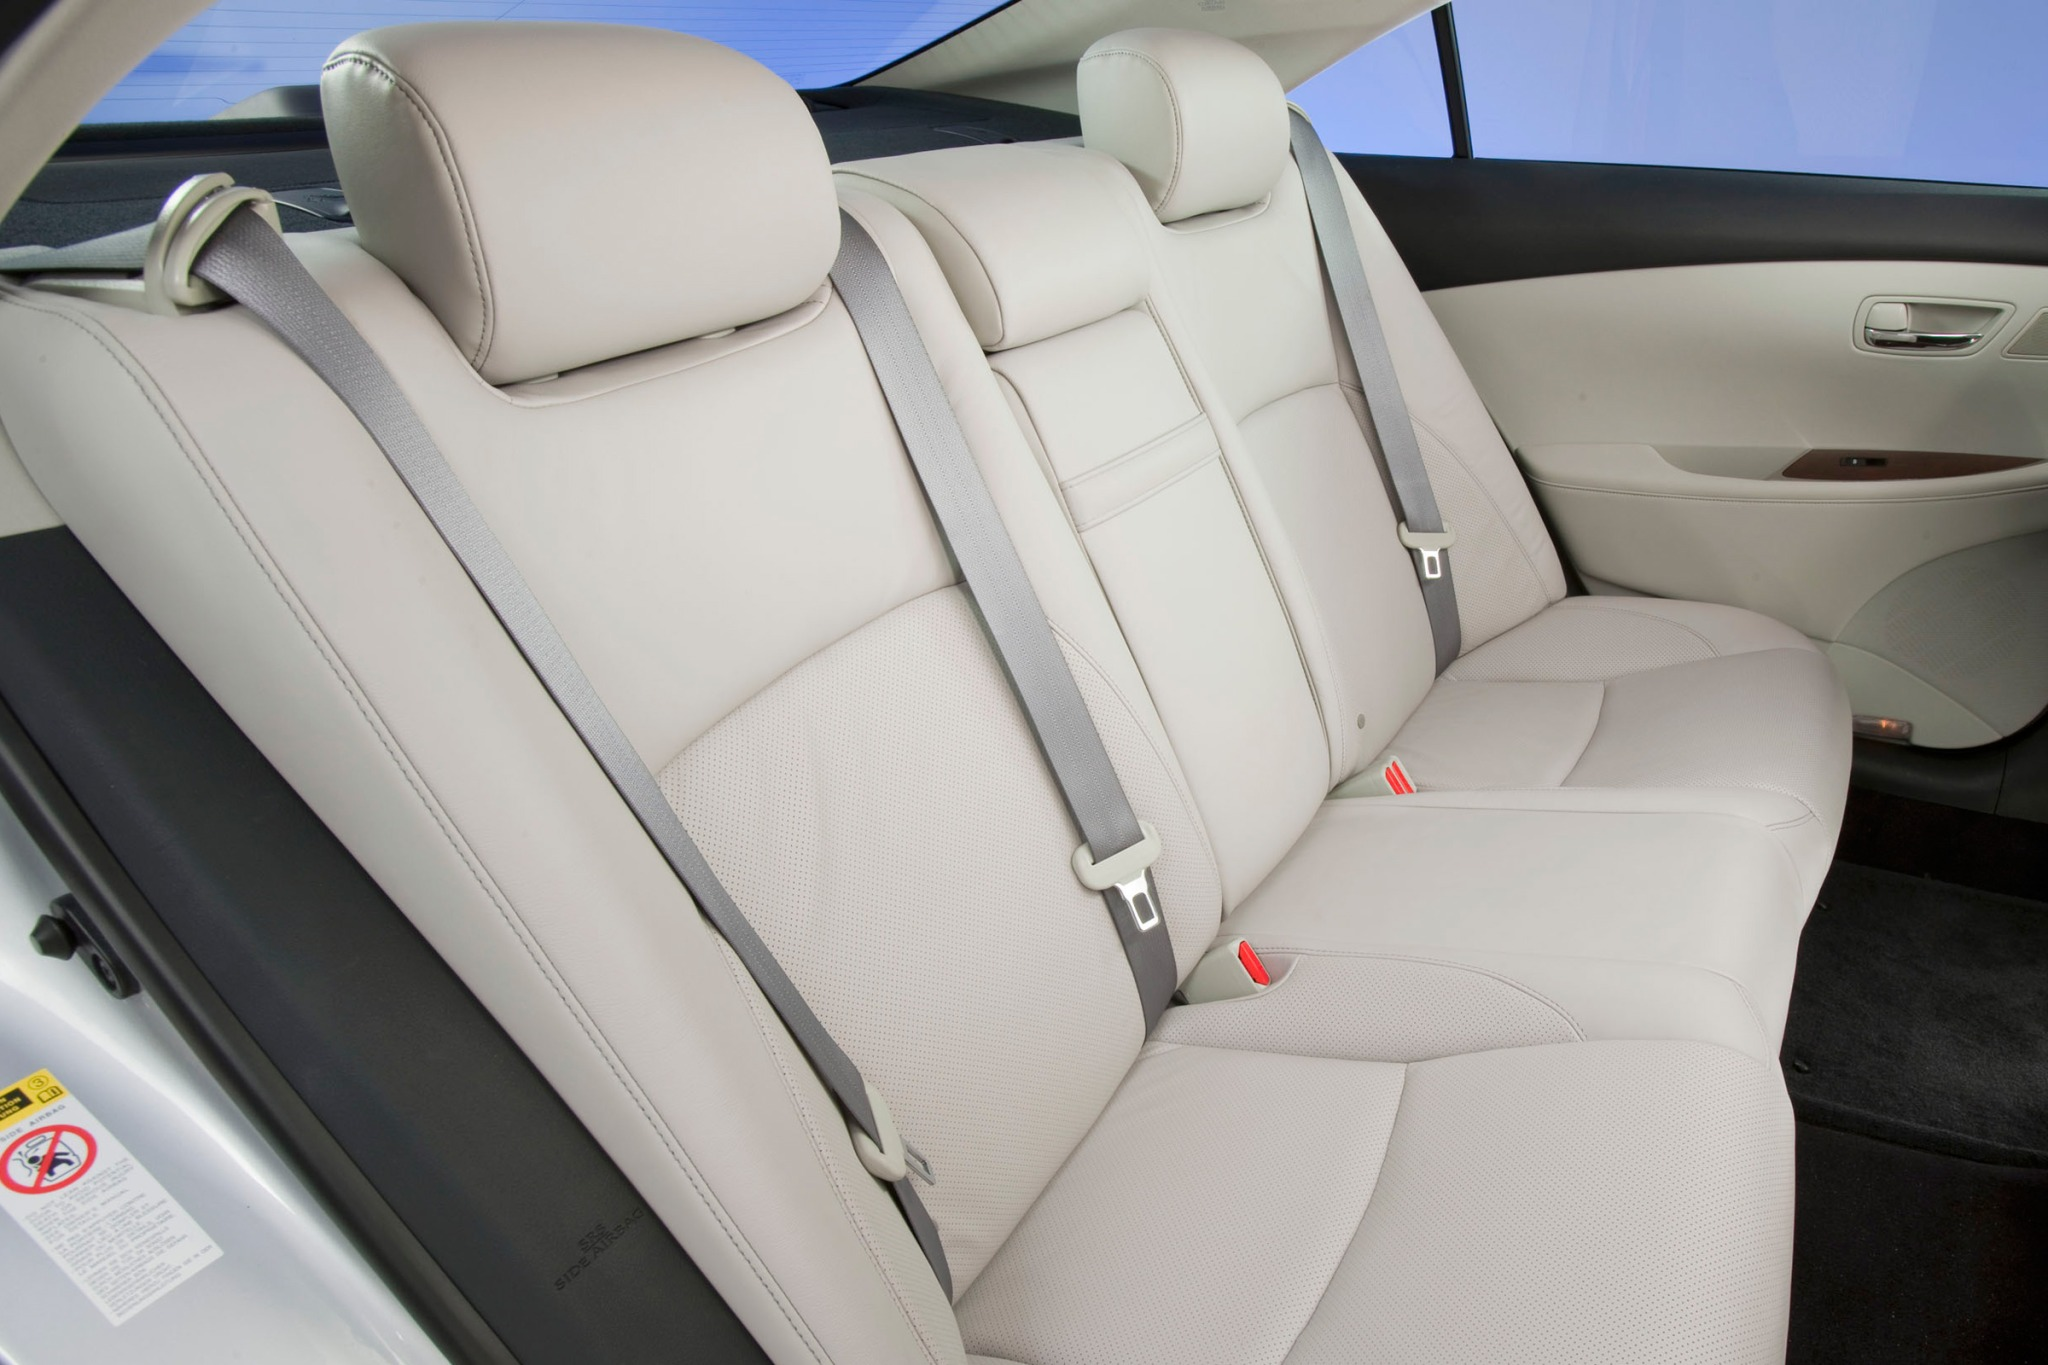 2010 Lexus ES 350 Center  interior #8